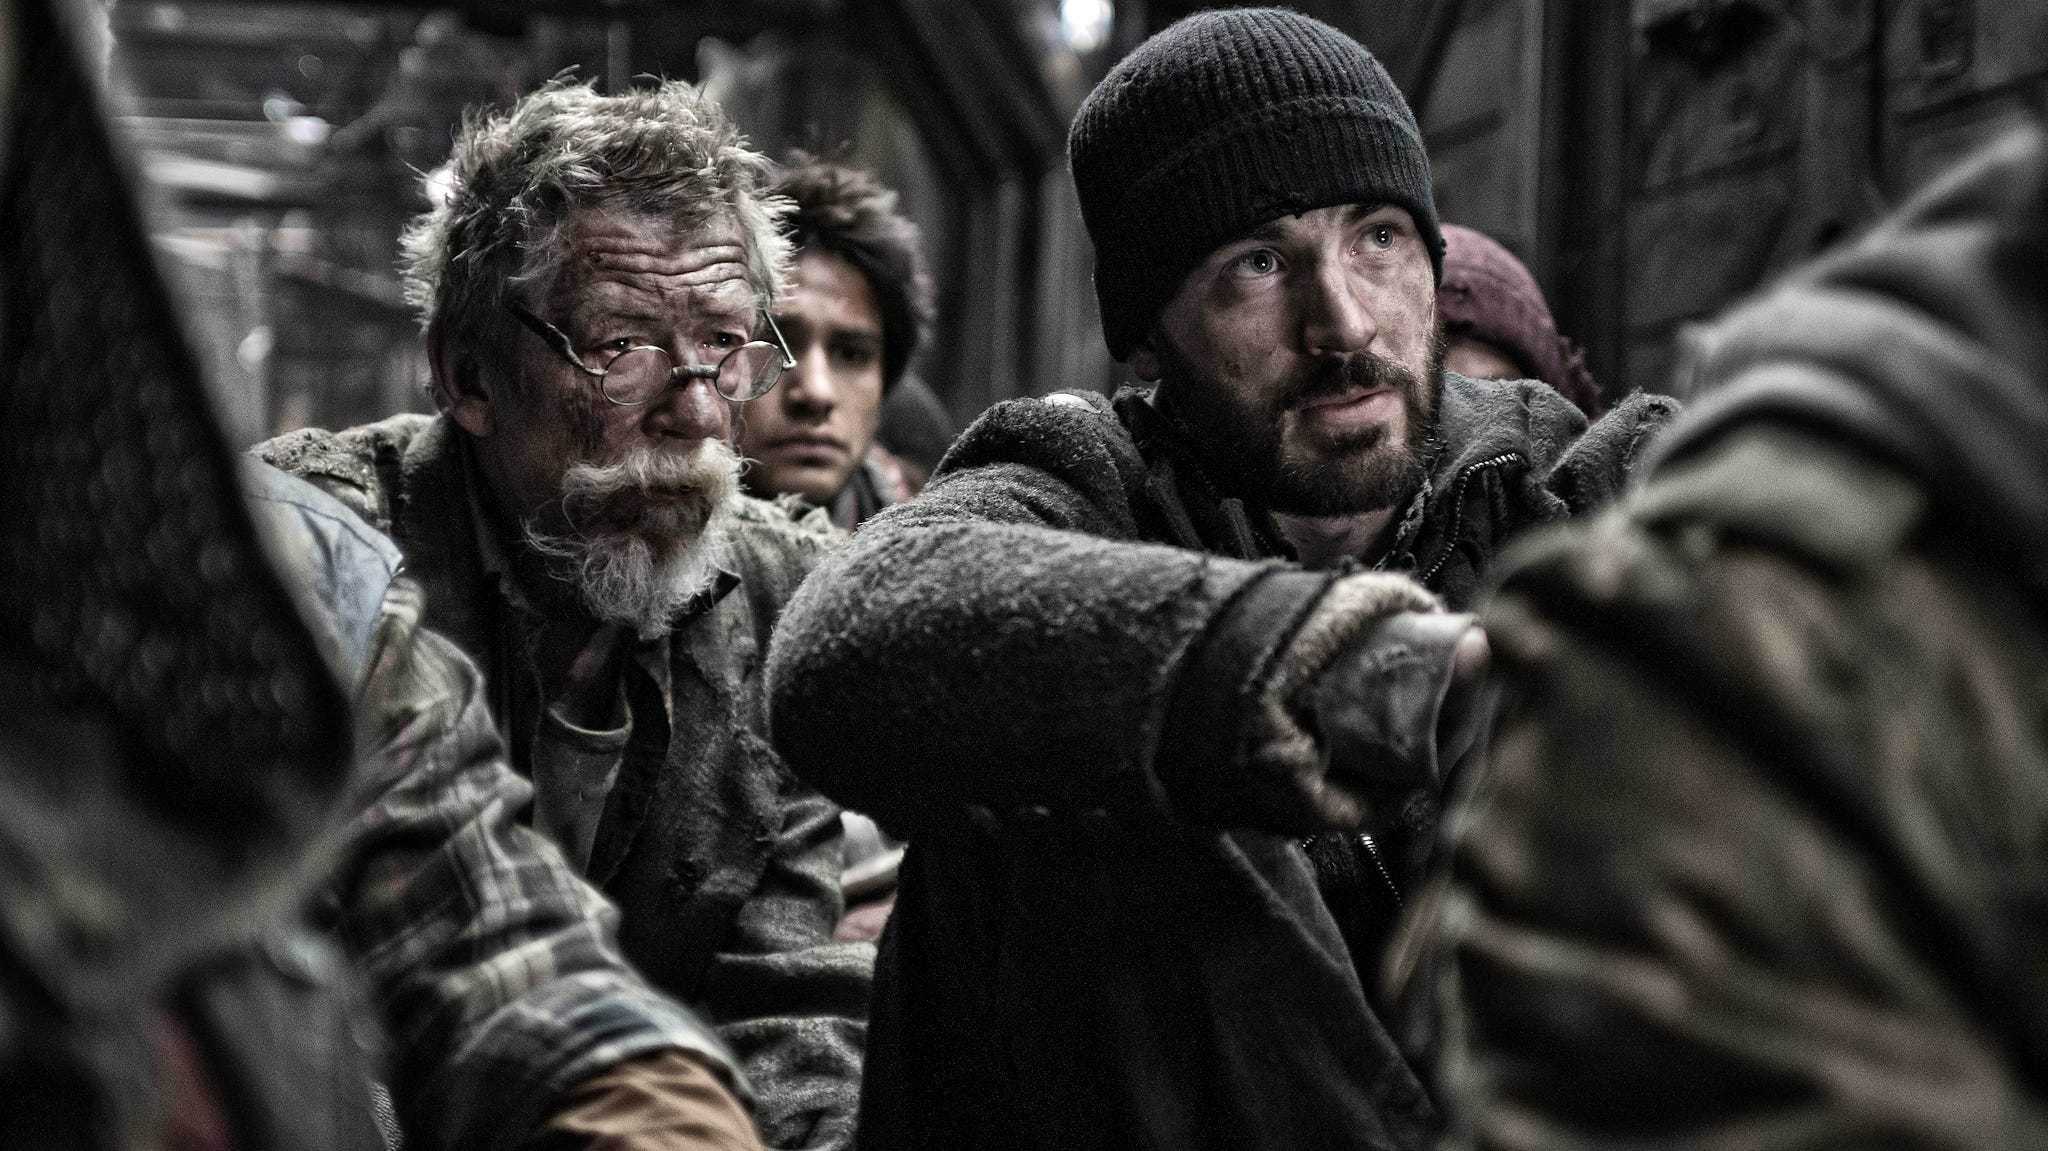 Stylish 'Snowpiercer' takes a cold look at class divisions